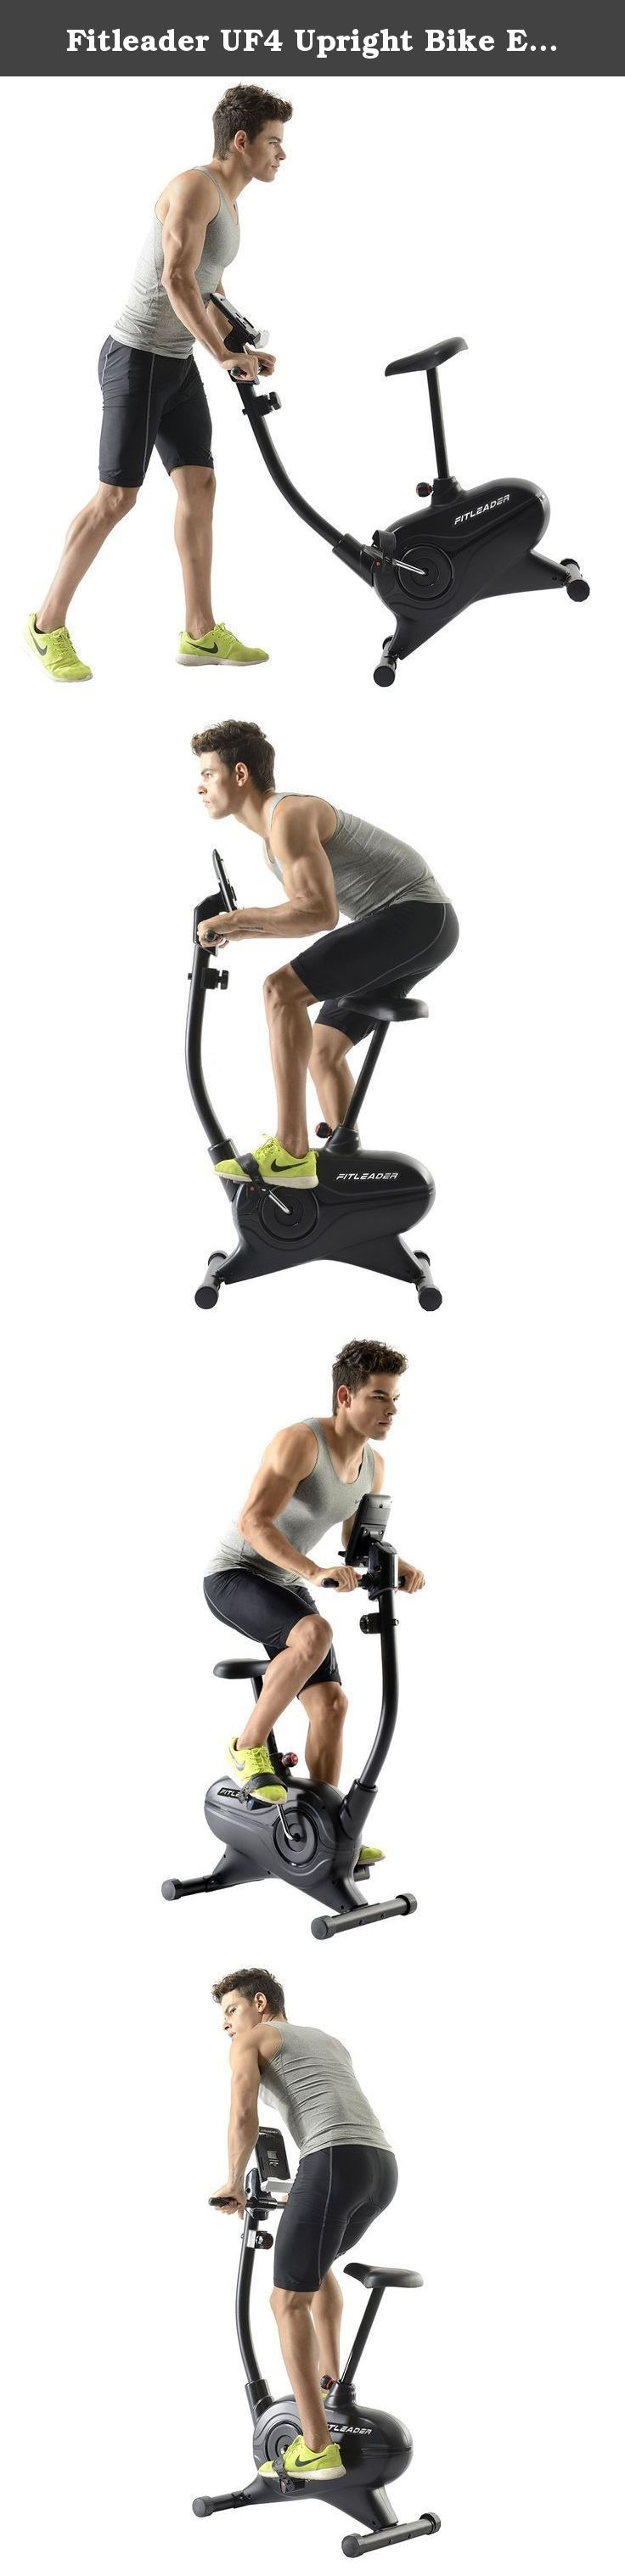 Fitleader UF4 Upright Bike Exercise Indoor Stationary Bike Magnetic Belt Cardio Cycle Resistance Foldable Cycling. Description: Why Choose a Fitleader Upright Bike? Are you still trying to find the economy stationary bike for your home gym? If so, the Fitleader UF4 upright bike is the high quality, competitively priced exercise bike you??ve been looking for! With its eight resistance levels and progress readouts for speed, RPM, time, distance, watts, calories and pulse, the UF4 is exactly...